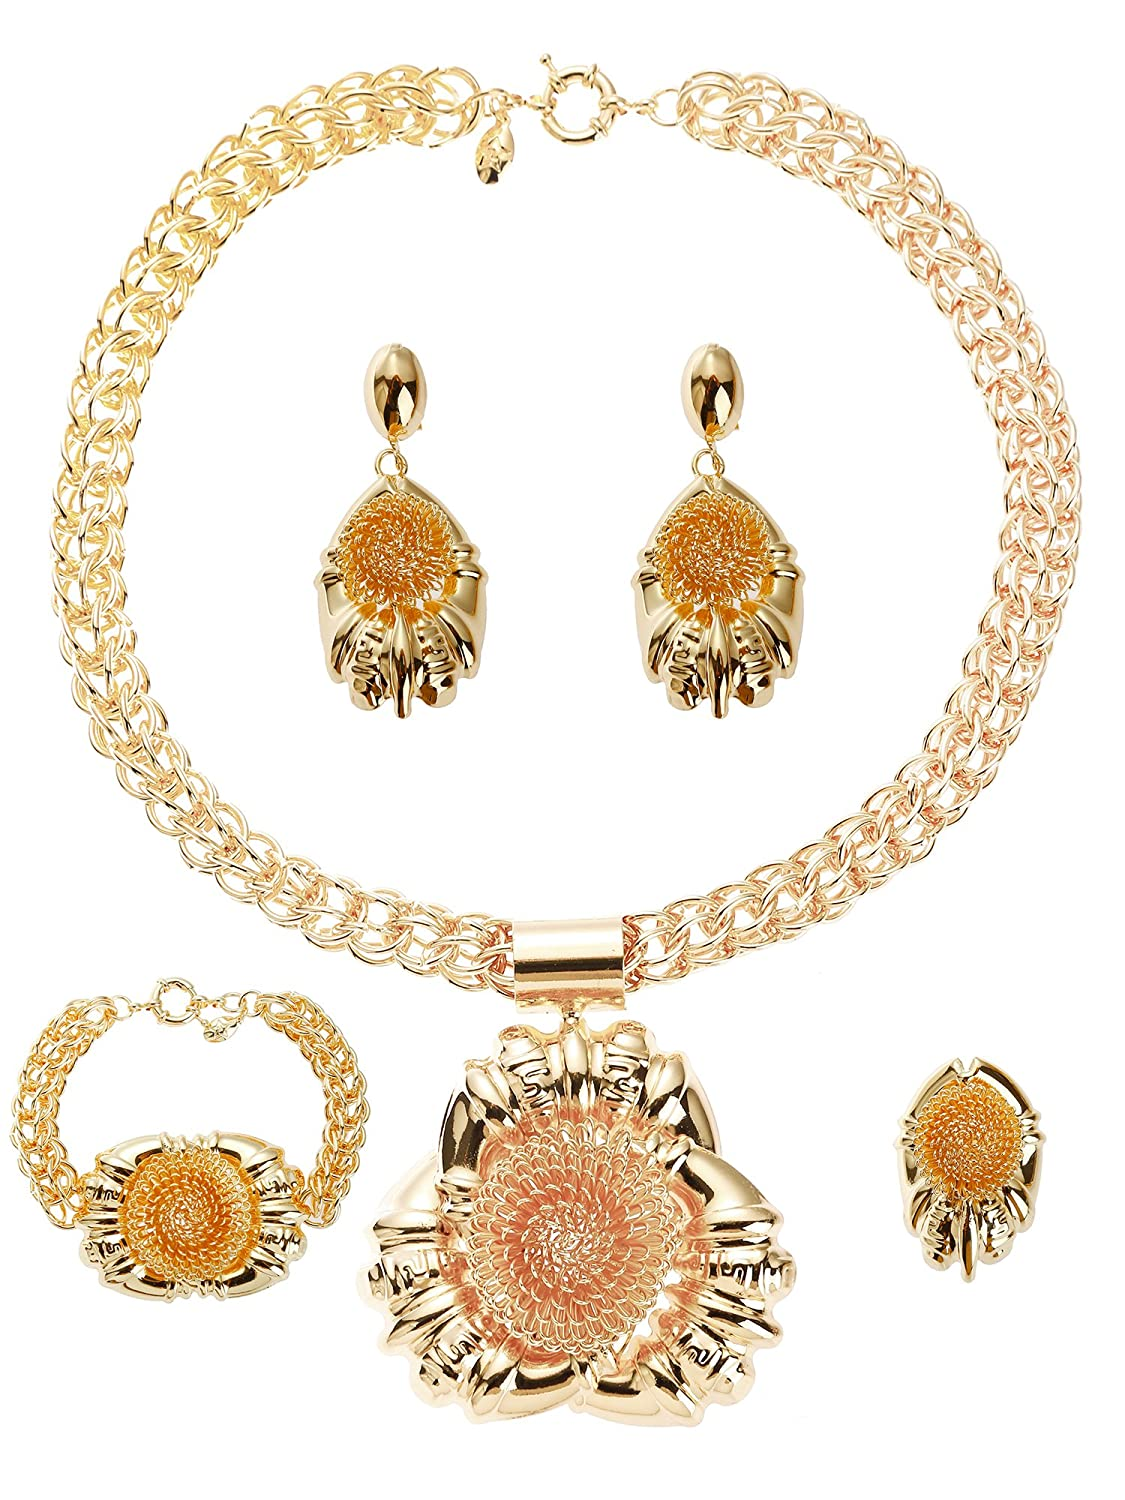 Moochi 18K Gold Plated Africa Style Necklace Earrings Ring Bracelet Jewelry Set T0152